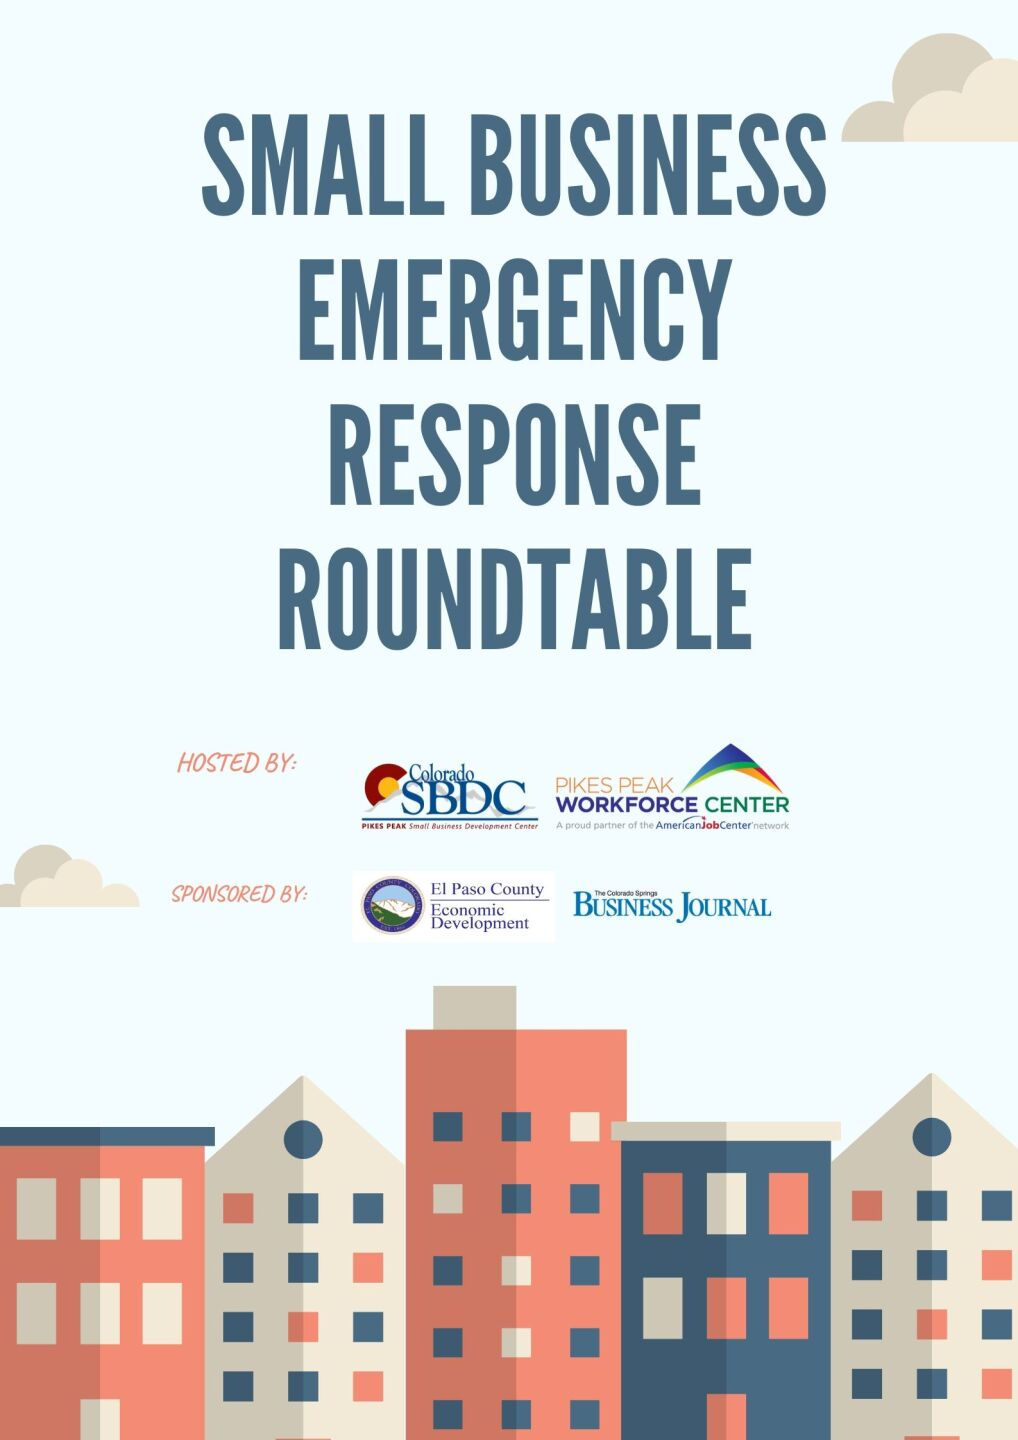 Small Business Emergency Response Roundtable